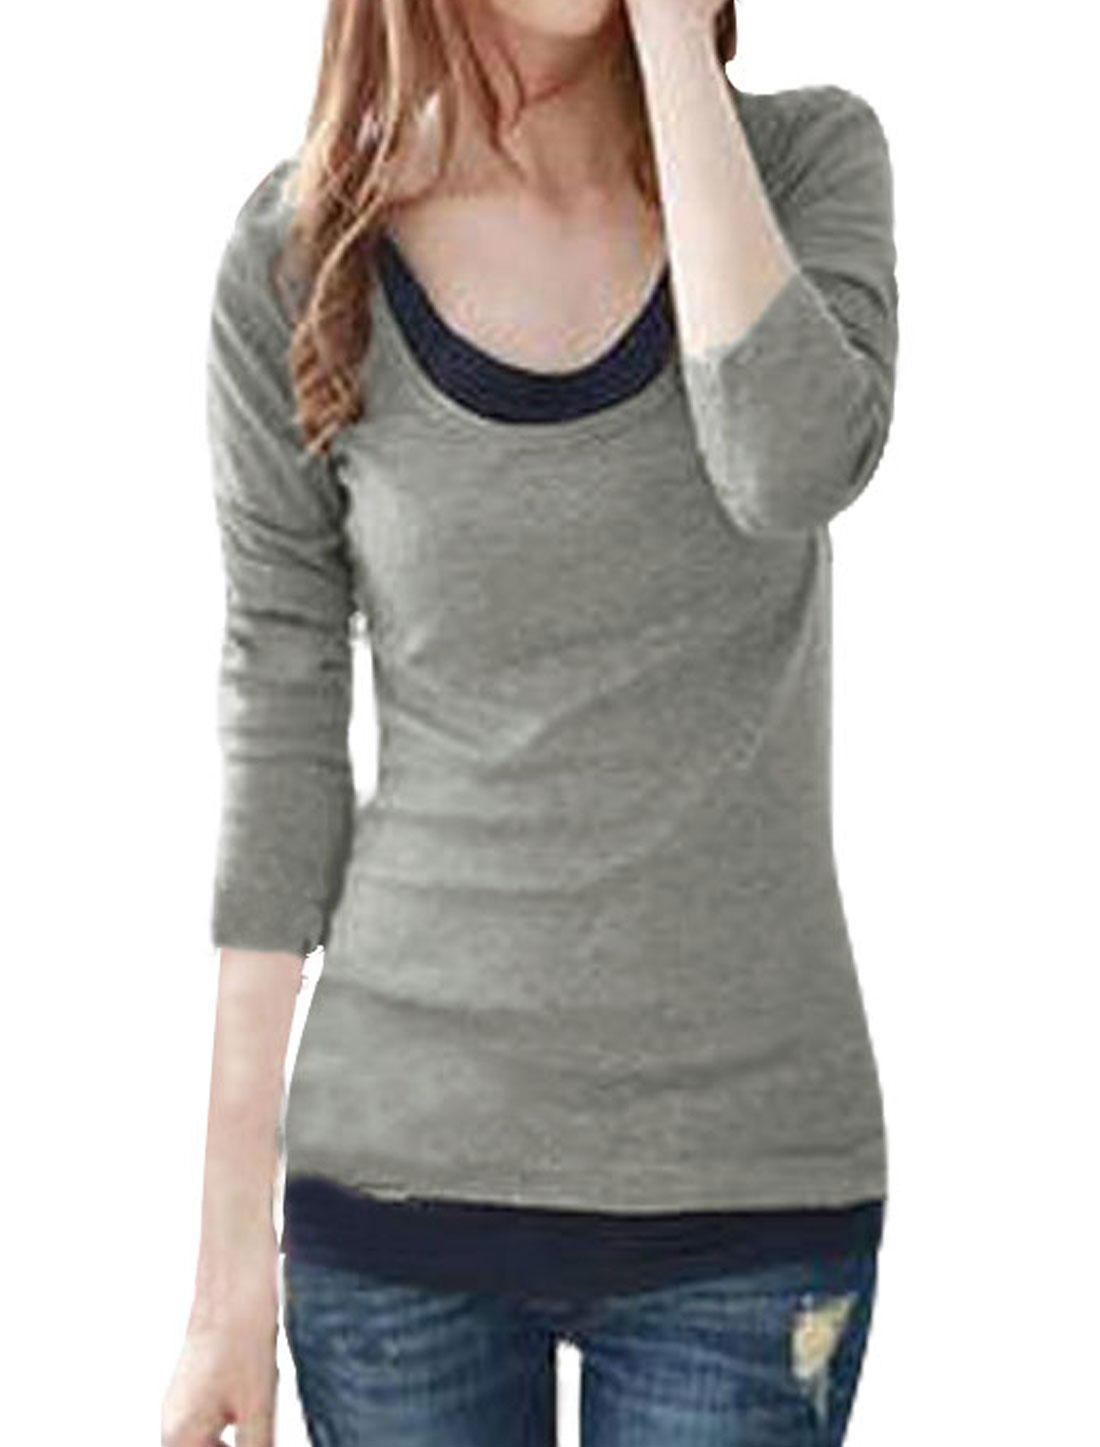 Ladies Light Gray Scoop Neck Casual Layered Tops Shirt XS